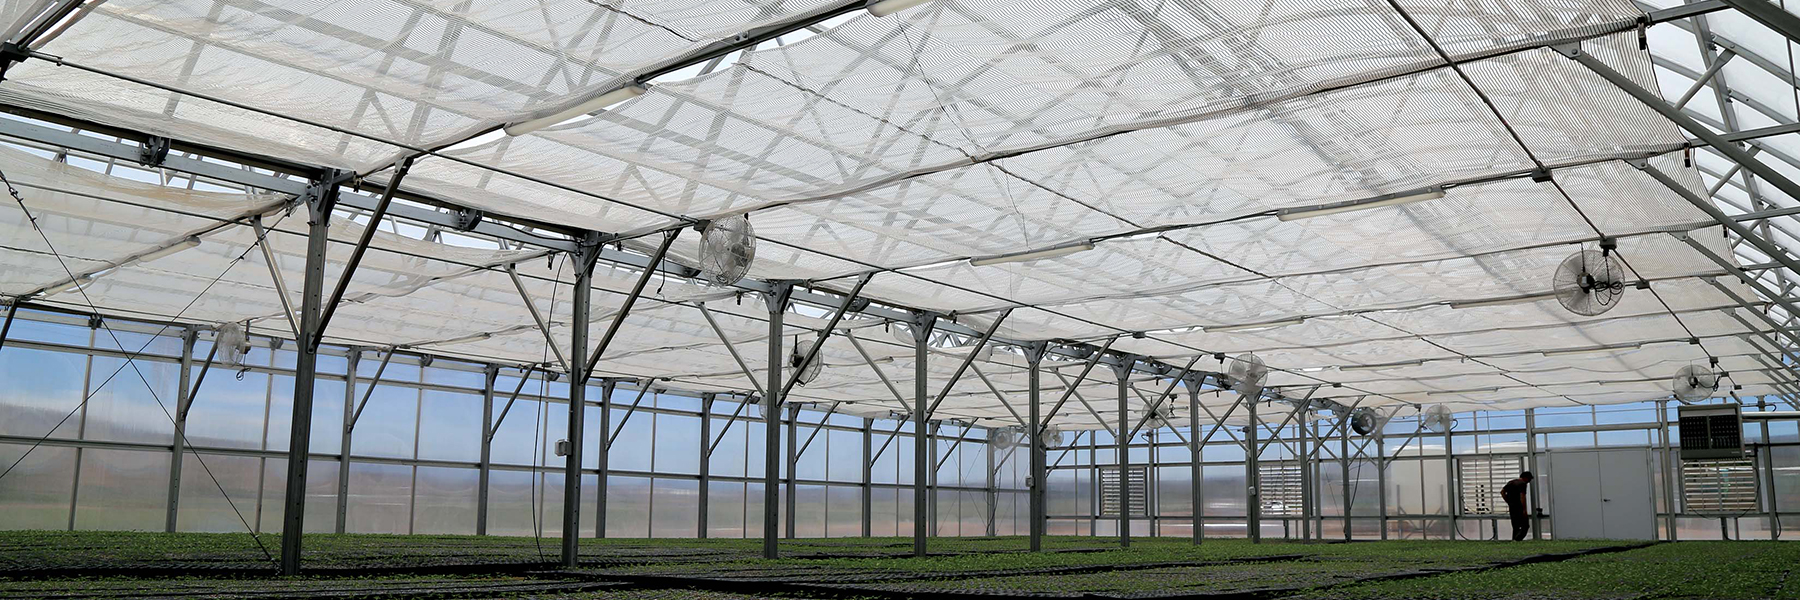 commercial greenhouse structures